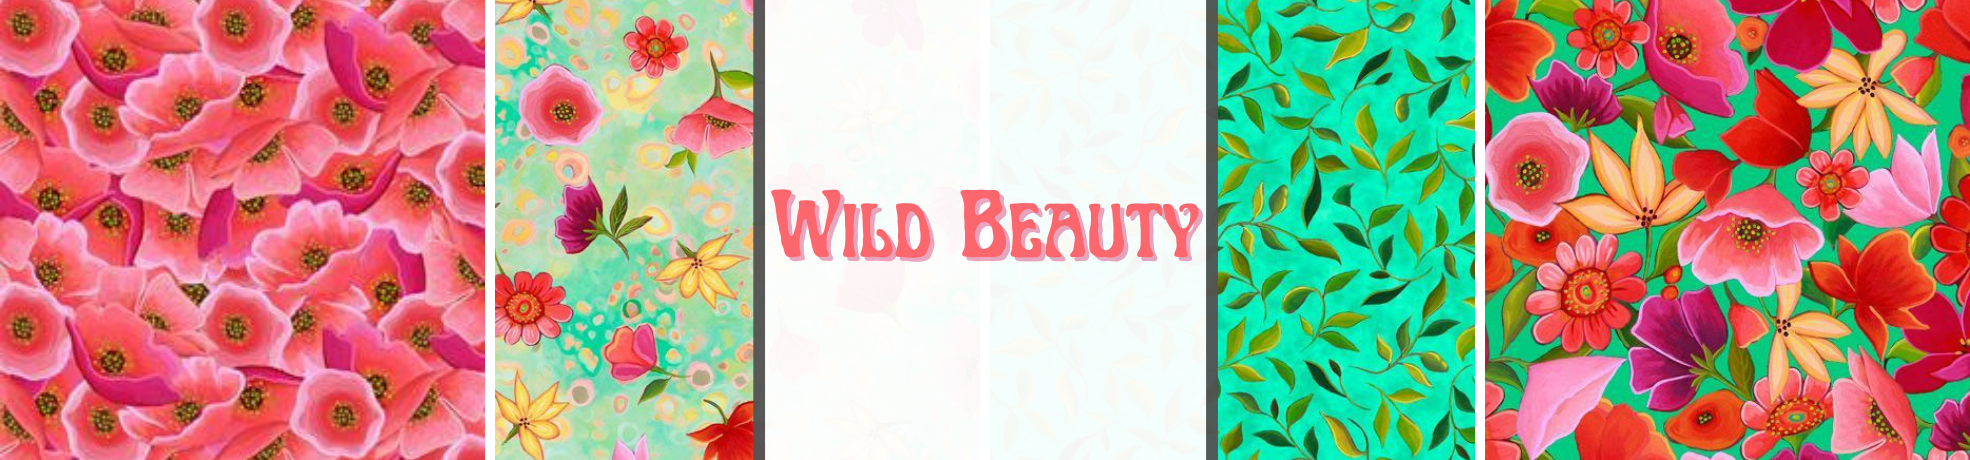 Wild Beauty Fabric Collection